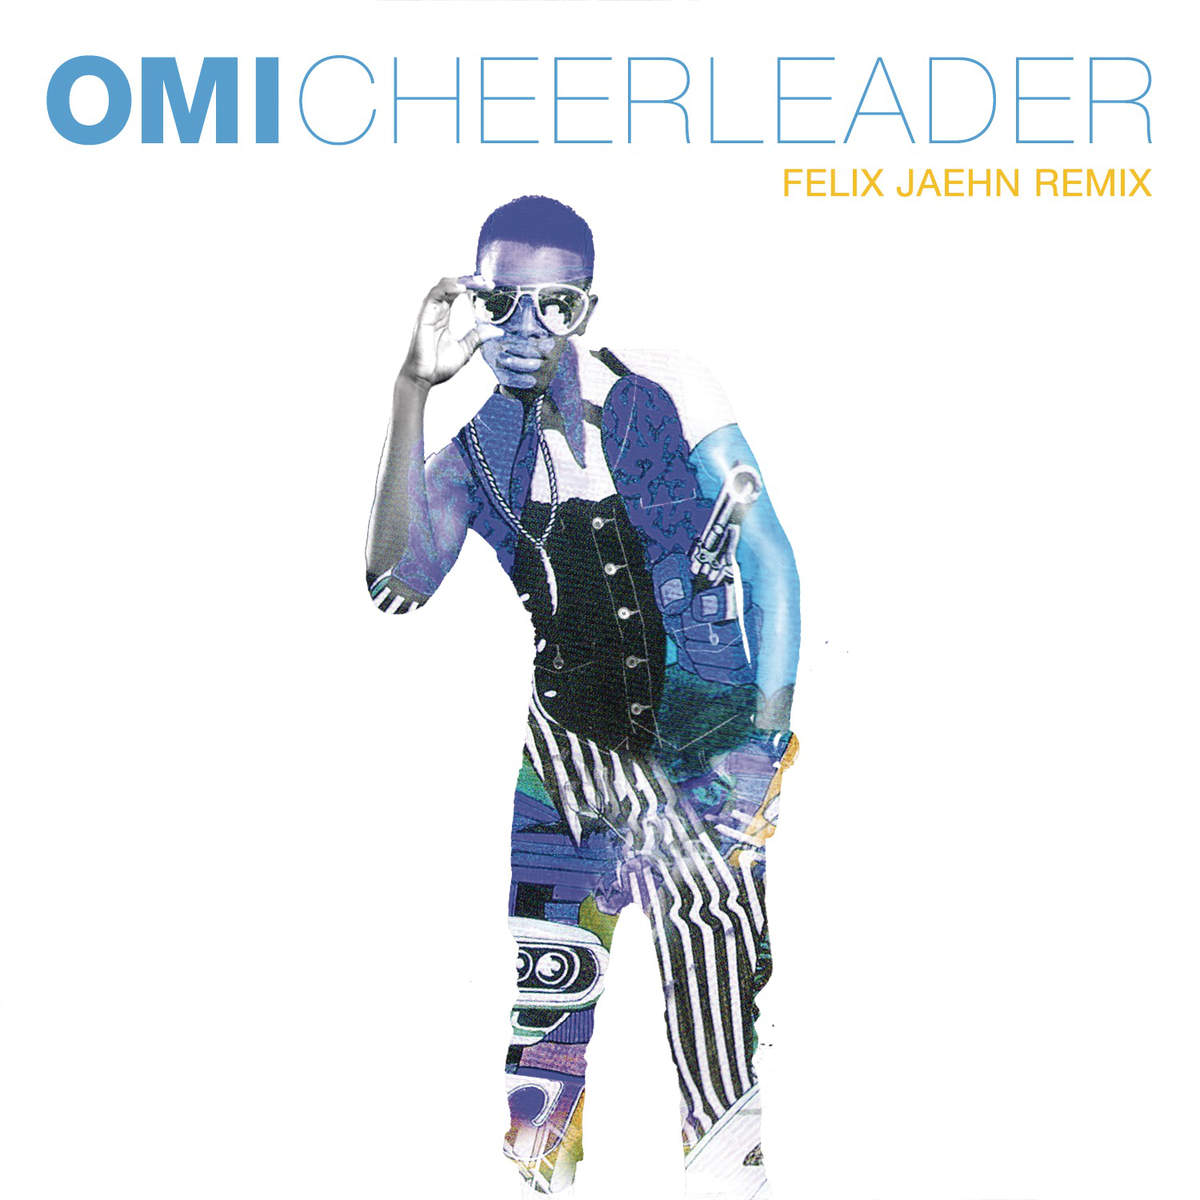 Omi cheerleader felix jaehn remix s